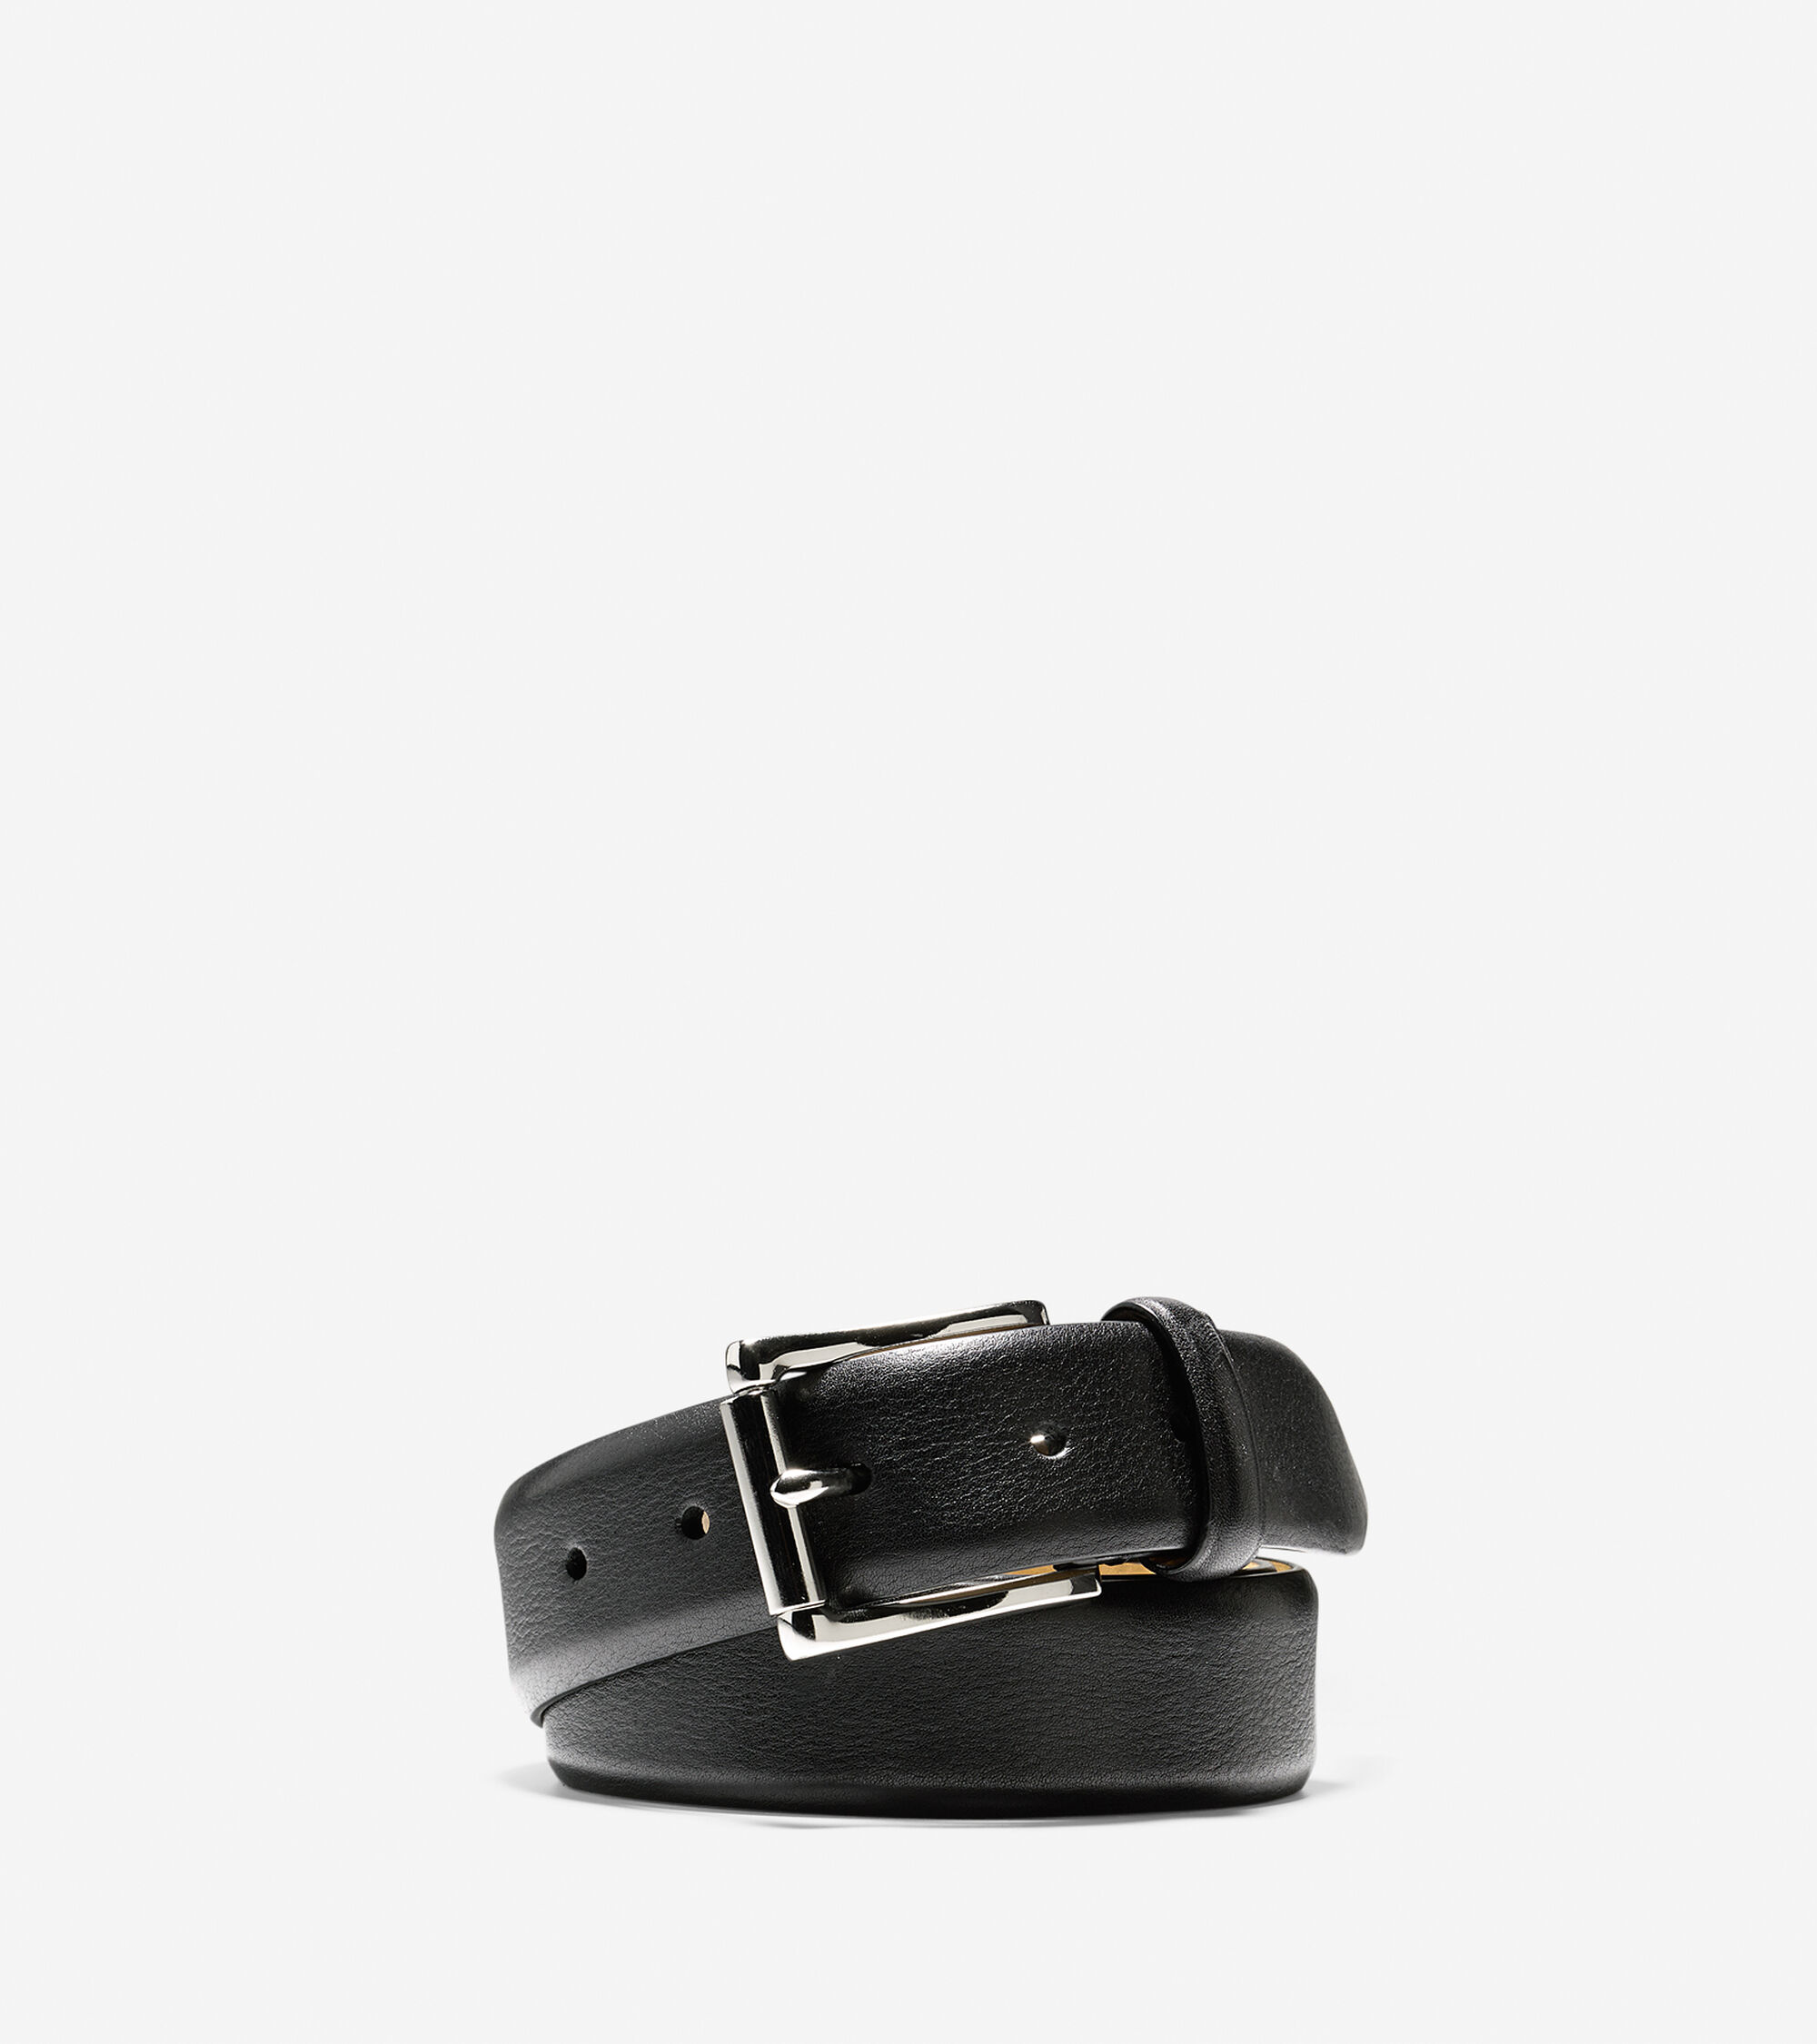 Accessories > 32mm Burnished Leather Belt